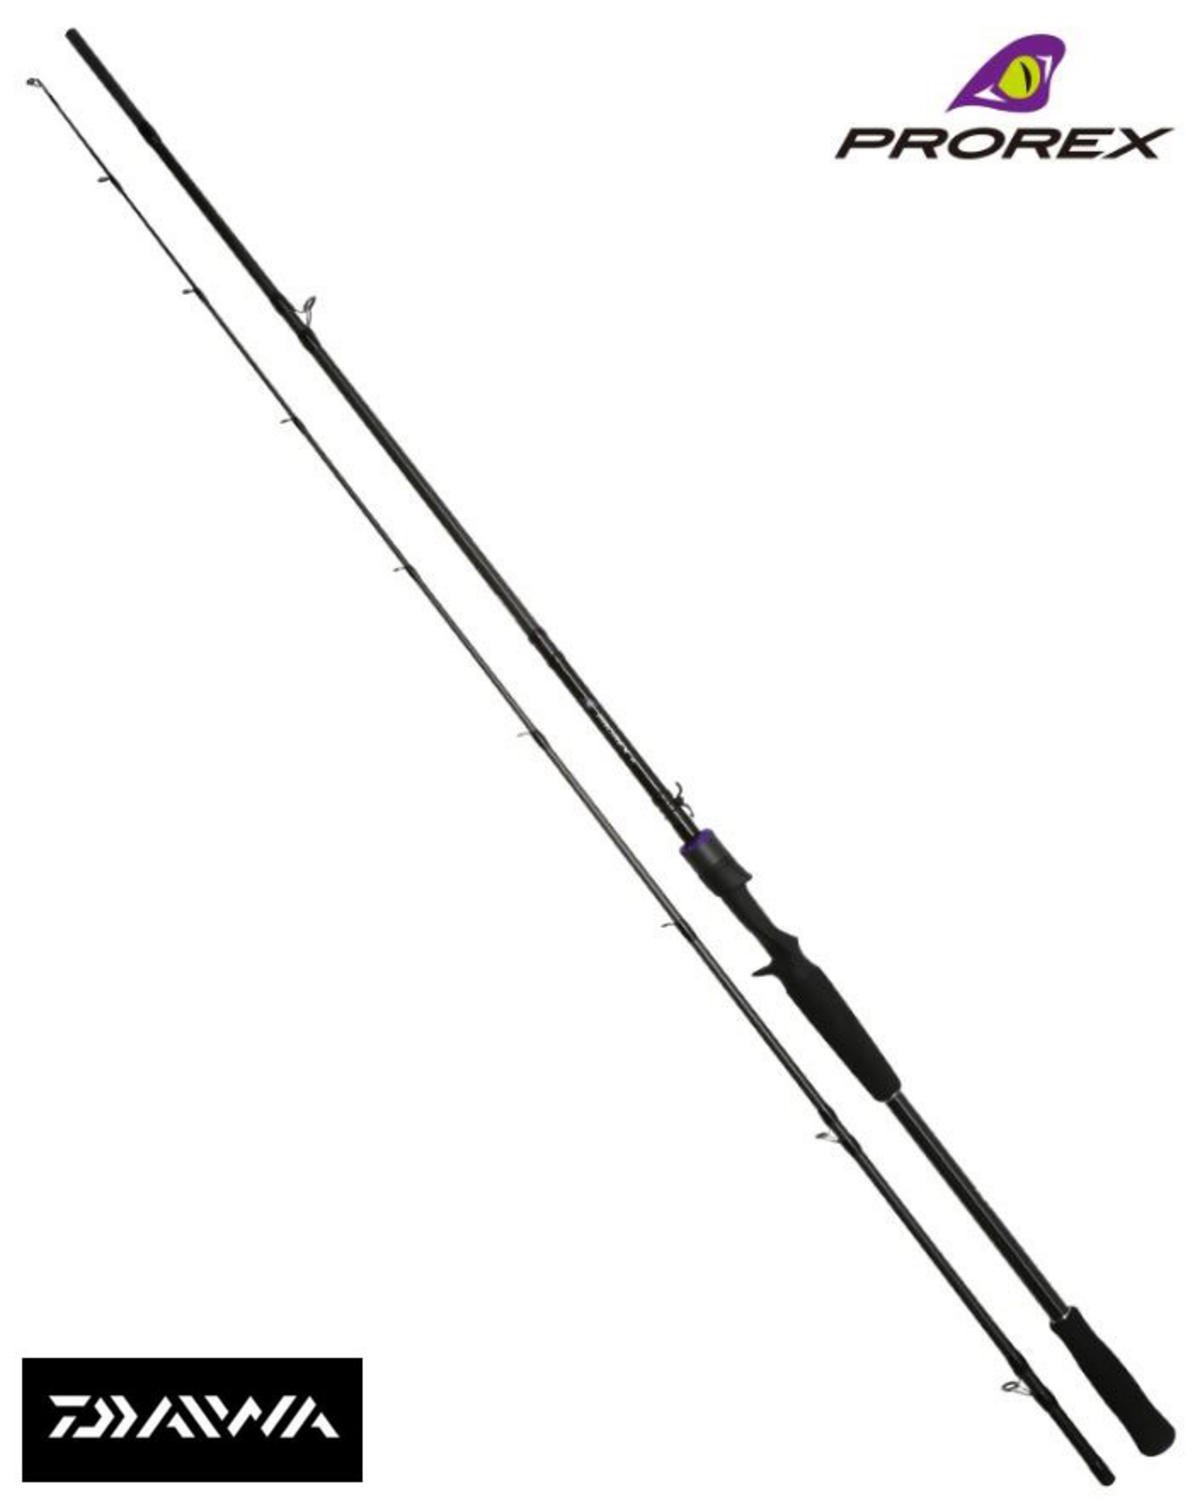 New Daiwa Prorex XR Baitcasting Spinning Rods Pike/Predator All Models Available